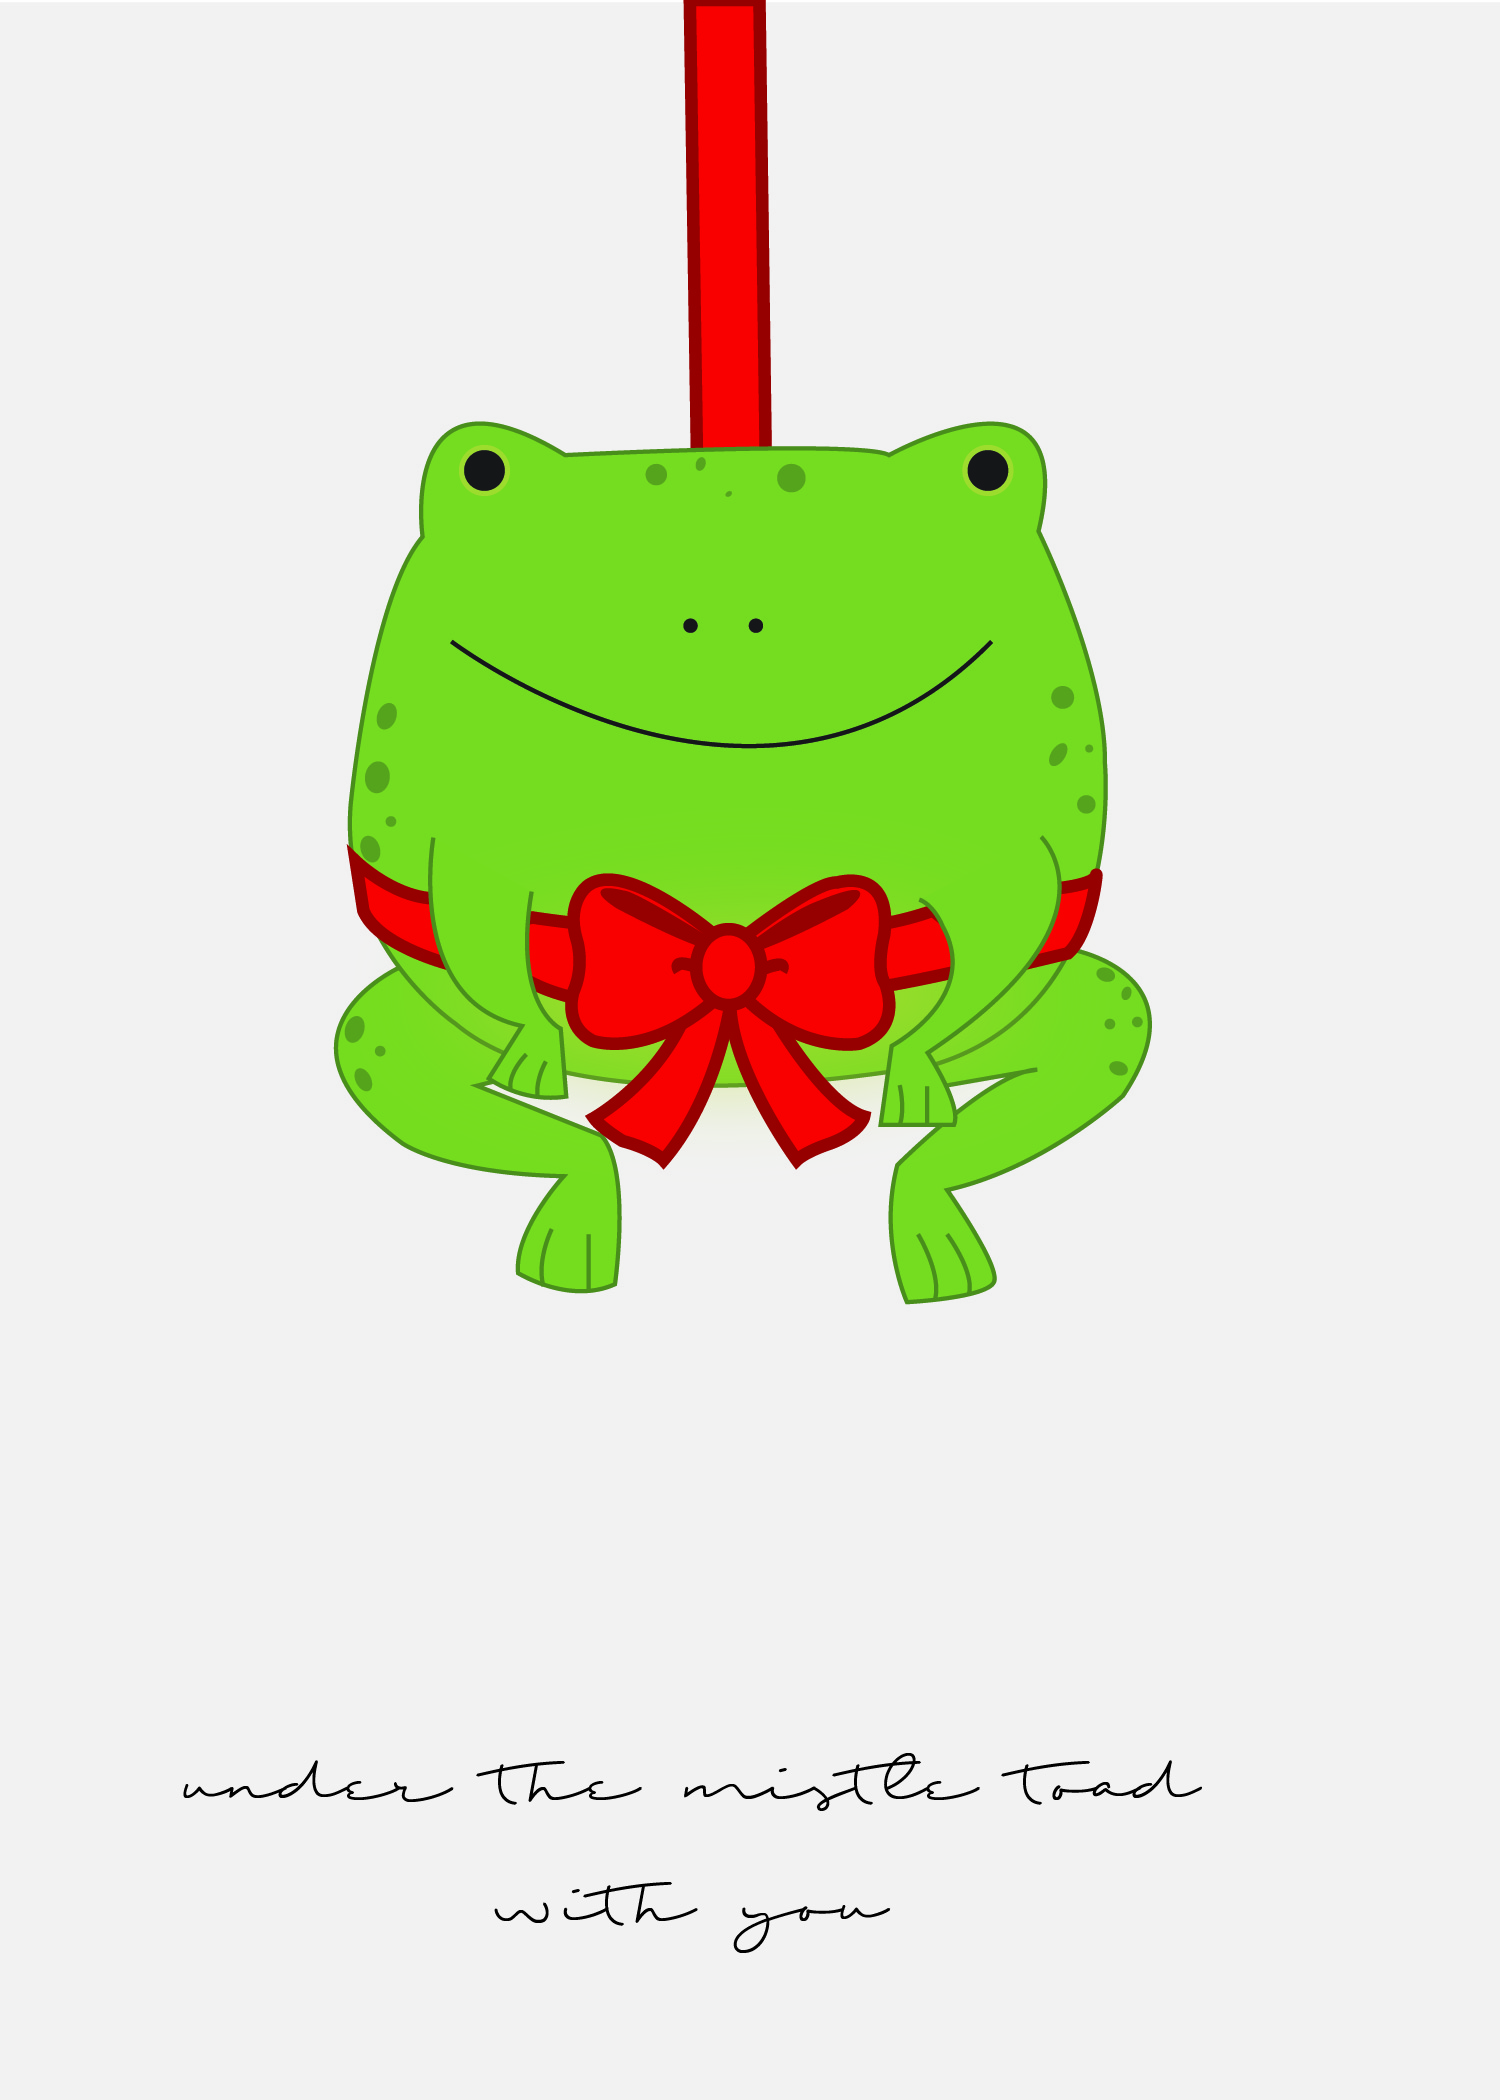 Niemeyer_mistle toad-01.jpg